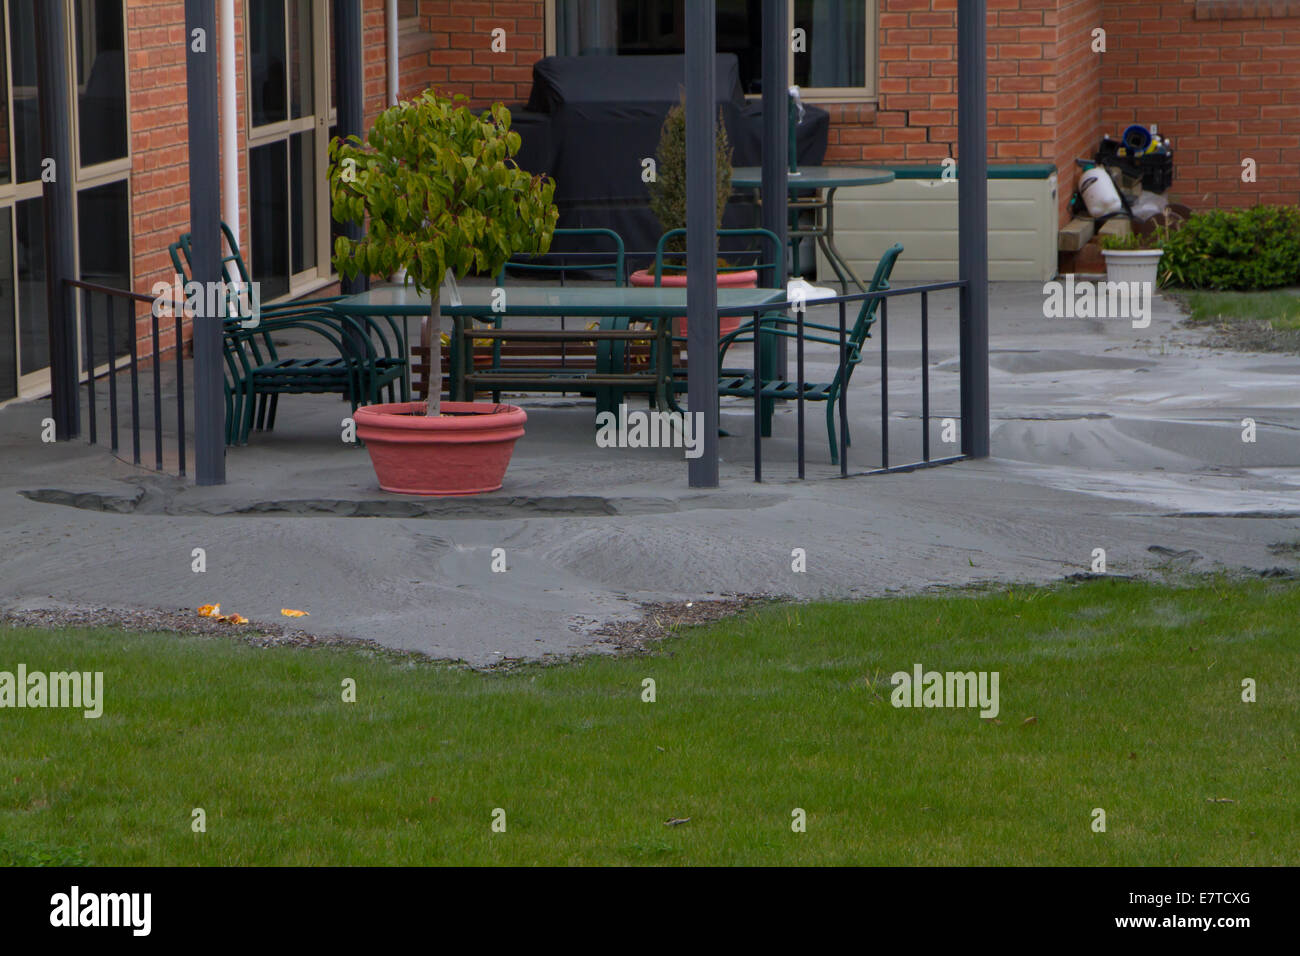 Earthquake Damage around Kaiapoi, just north of Christchurch, New Zealand, 7.1 magnitude, 4th September 2010 - Stock Image